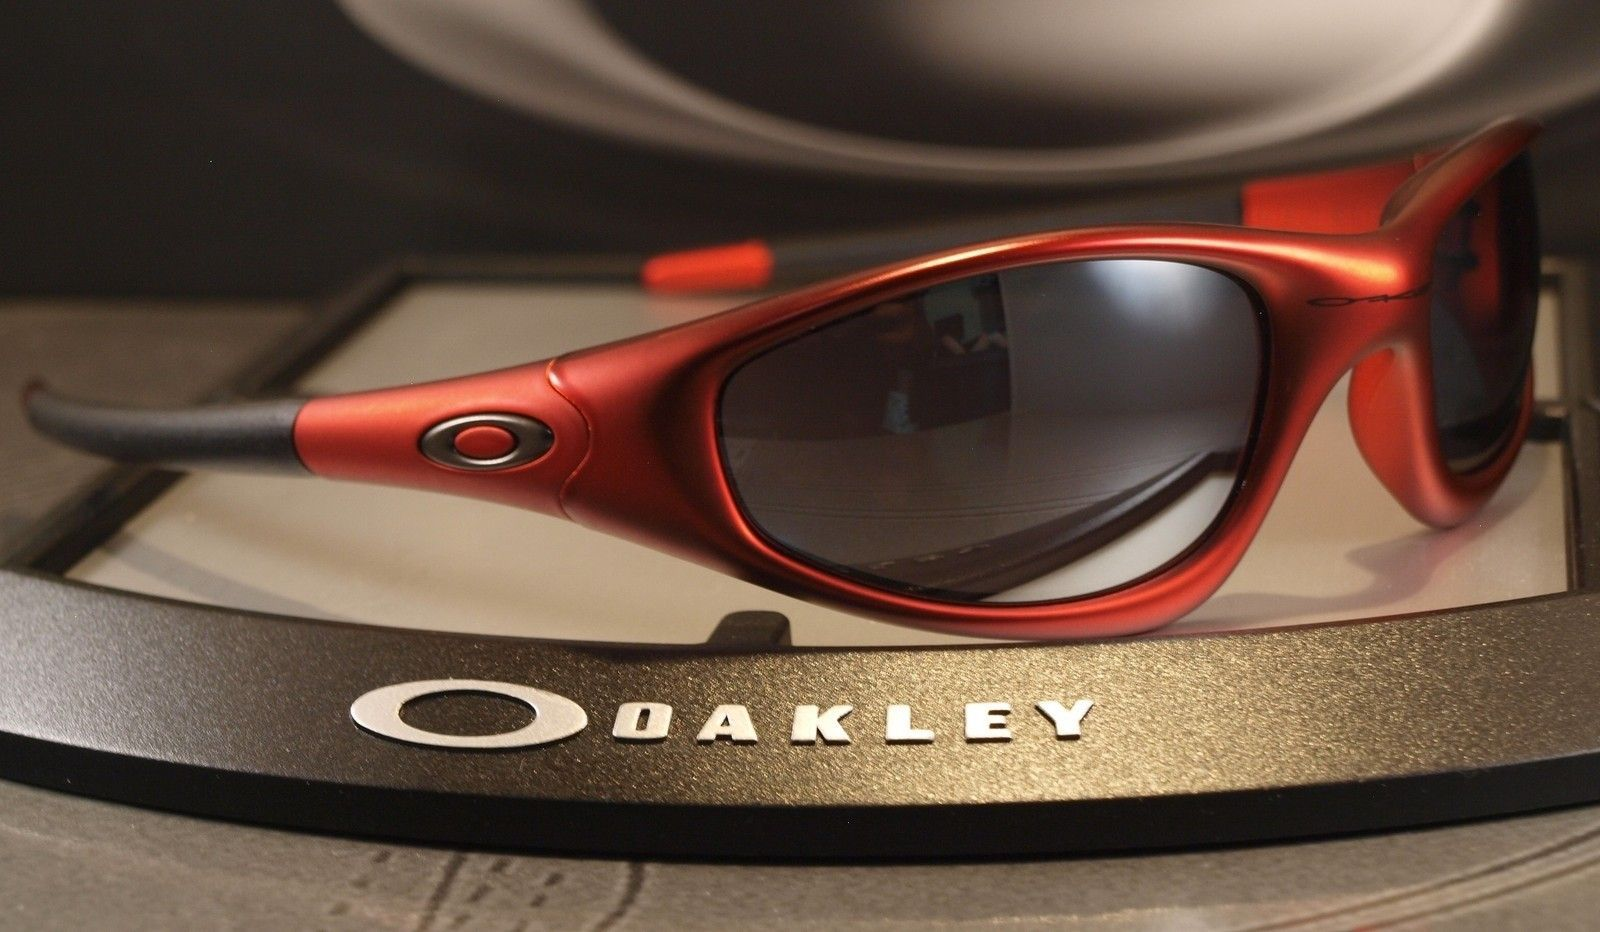 FS: OAKLEY New Straight Jacket ? RARE 04-268 ? BNIB ? Vintage ? FMJ Red ? - newstraightjktfmjred1.jpg